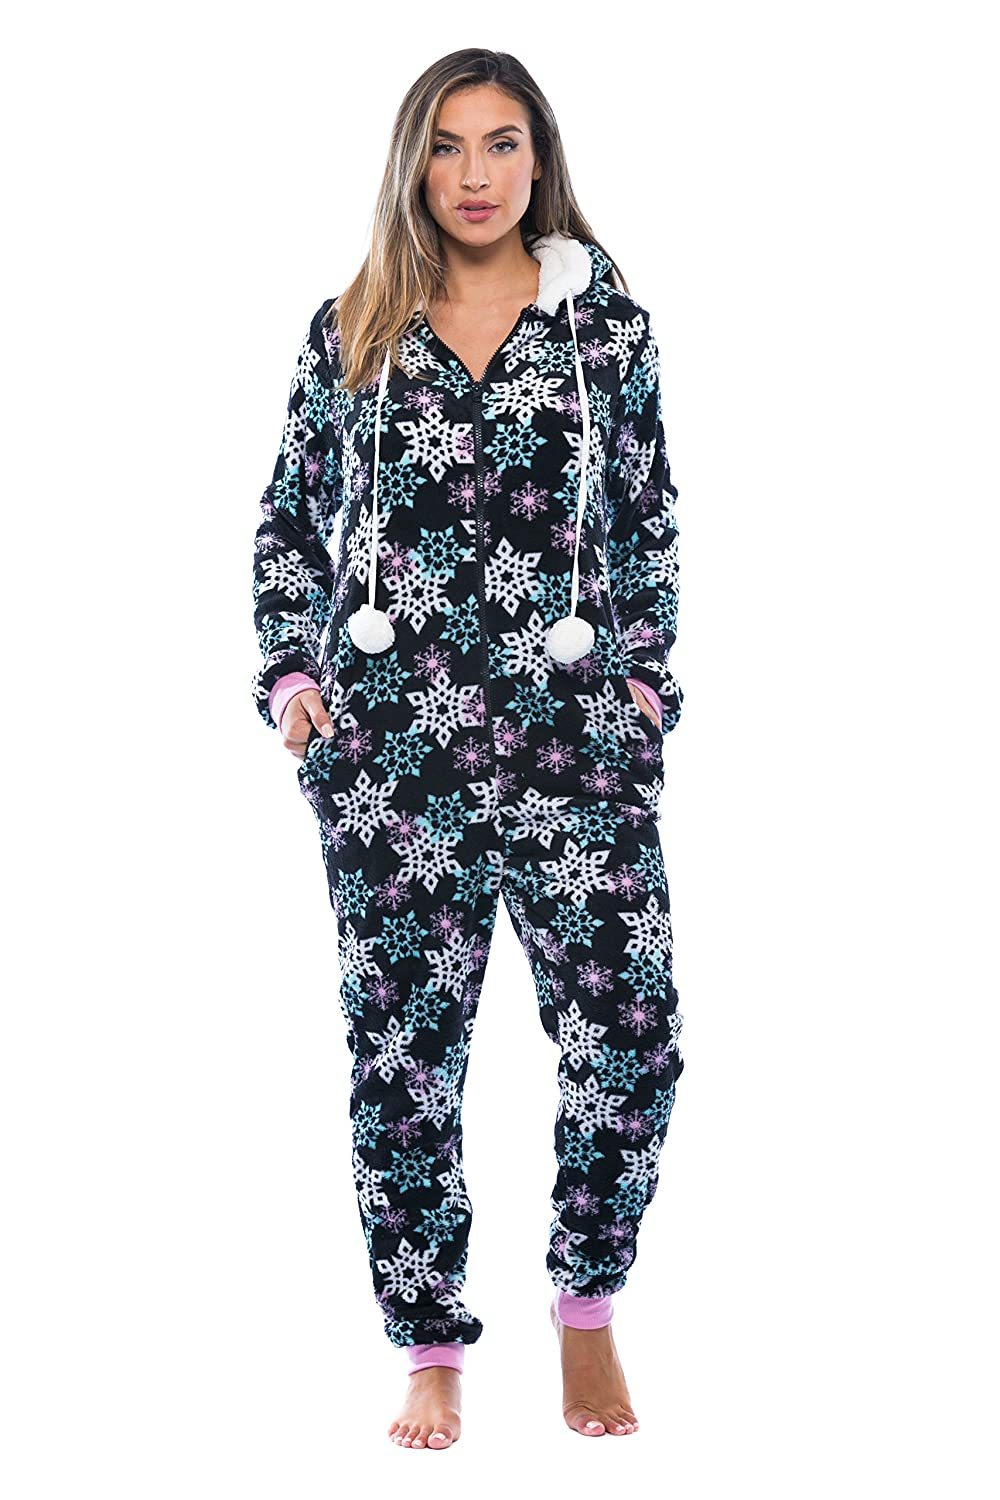 b1419e13c Amazon.com  Just Love Adult Onesie   Pajamas Black - Snowflake Small ...